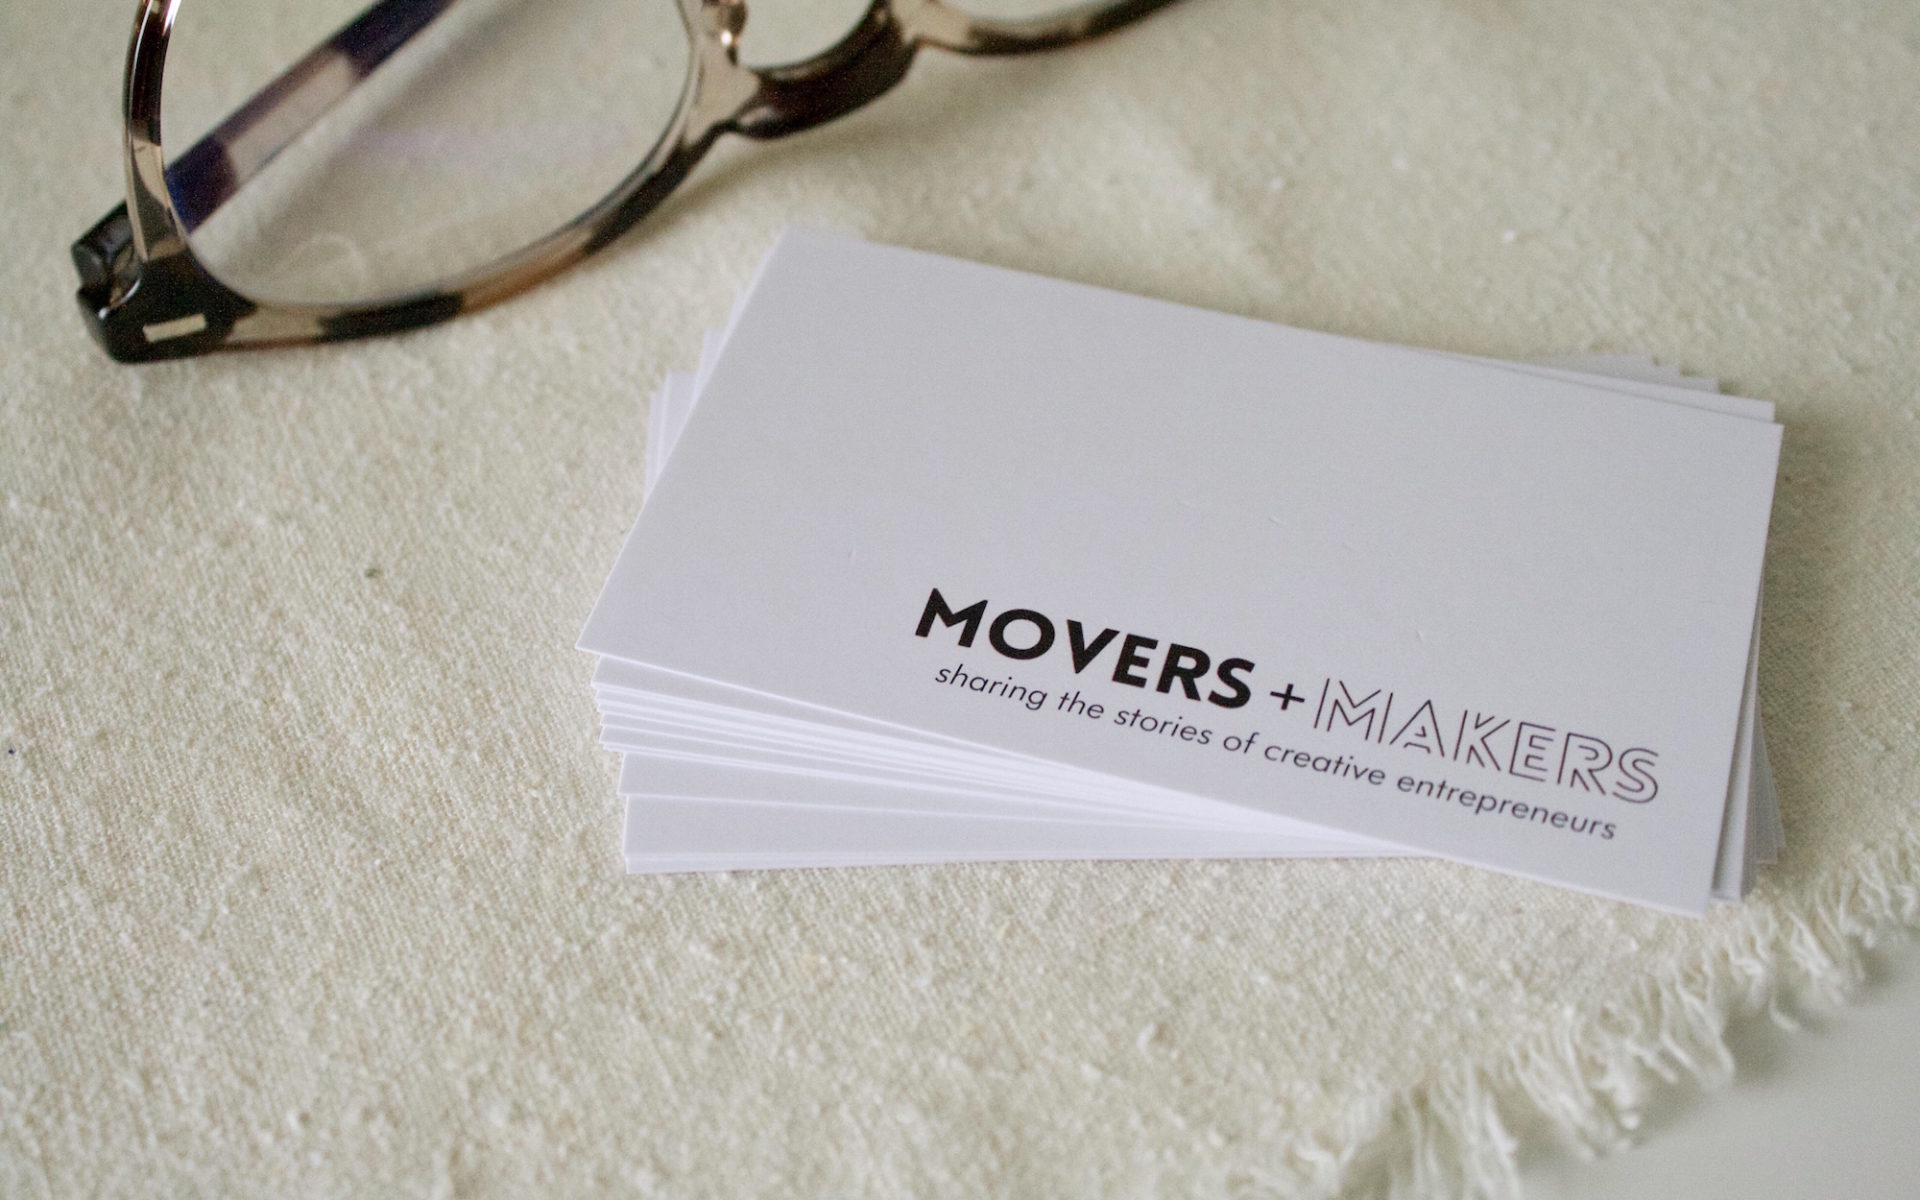 movers-and-makers